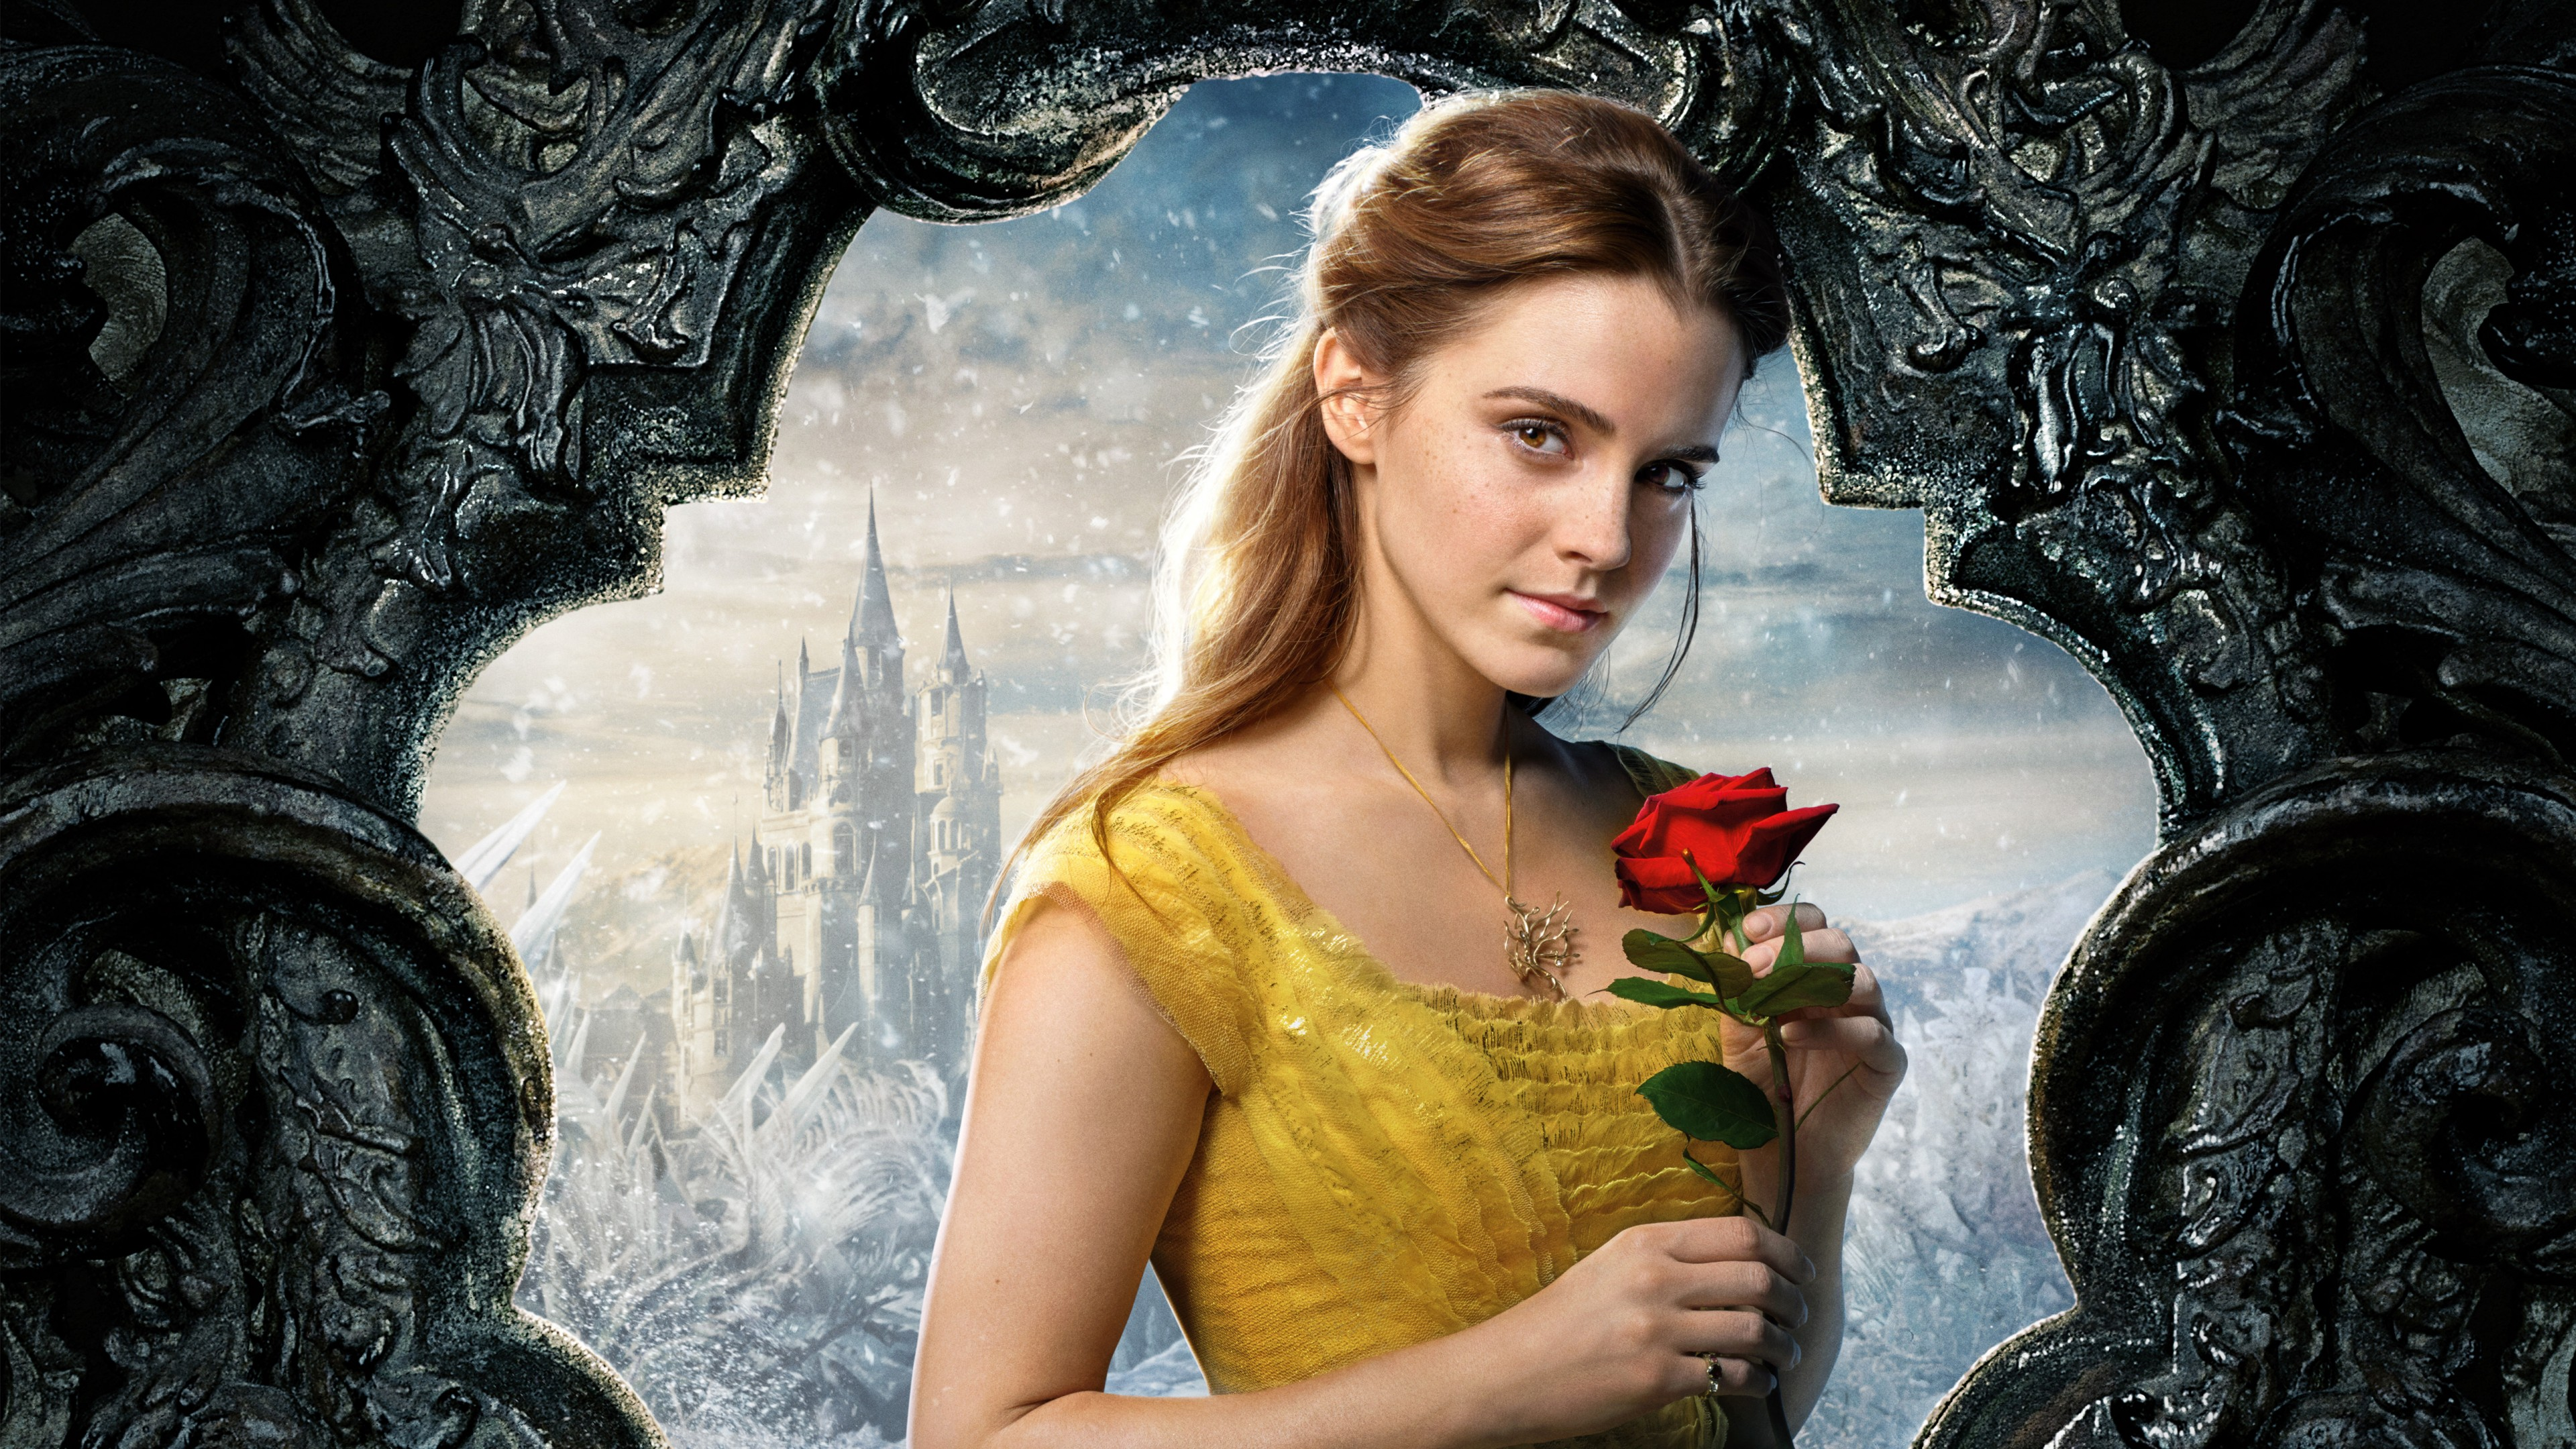 Lilly Iphone Wallpaper Belle Beauty And The Beast Emma Watson 5k Wallpapers Hd